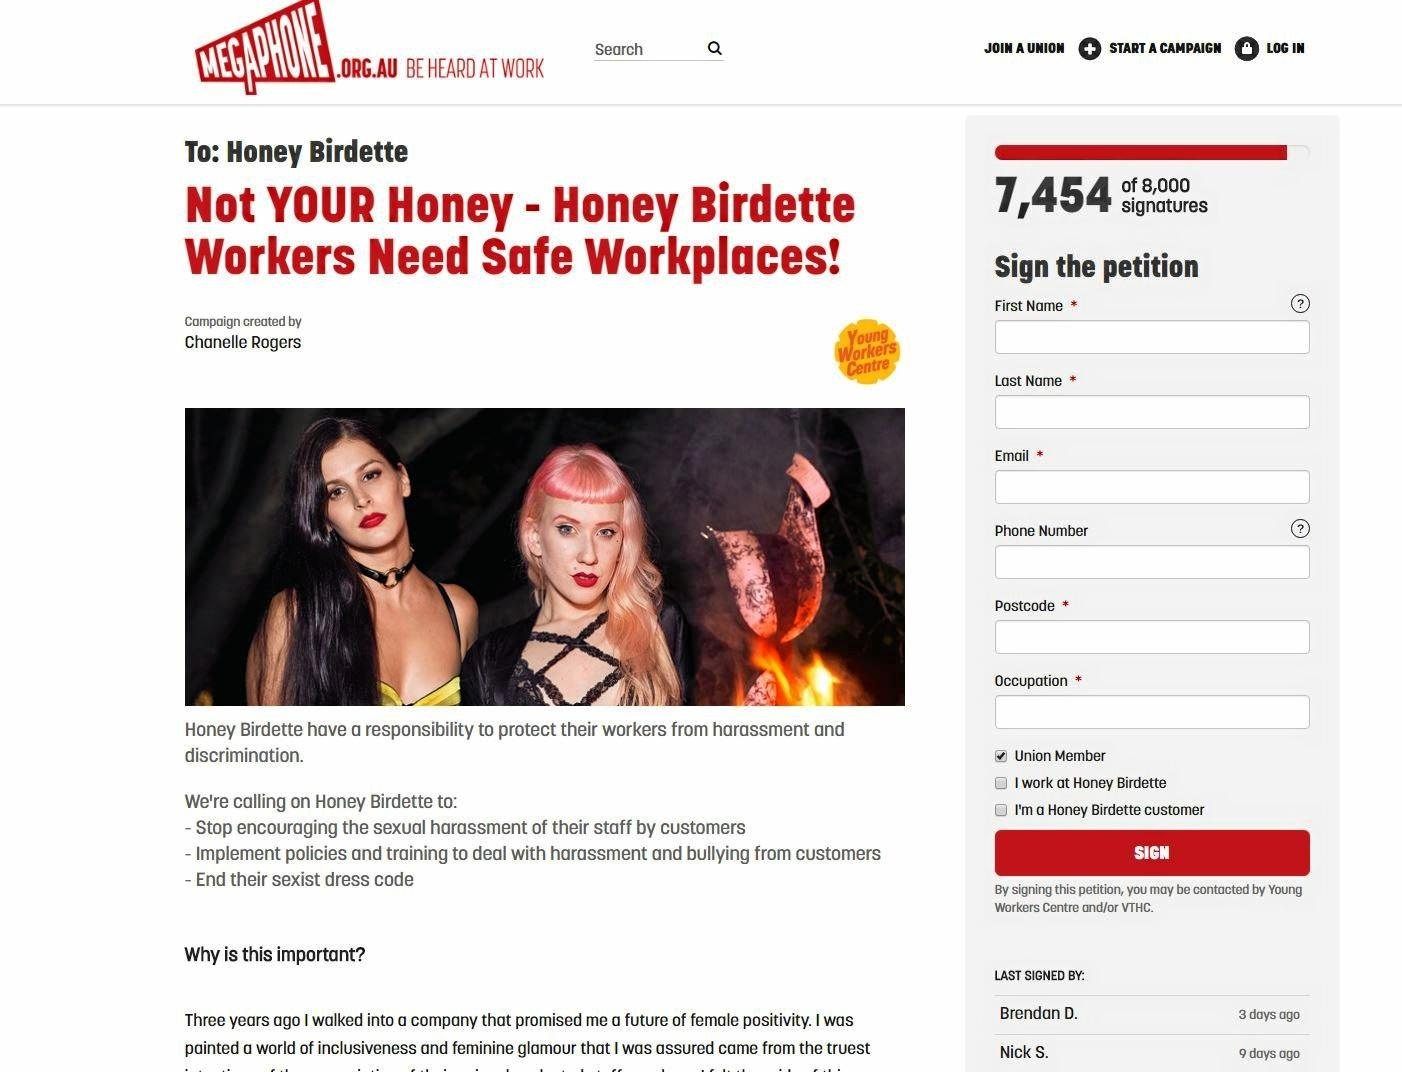 The campaign calling for change to Honey Birdette's practices.